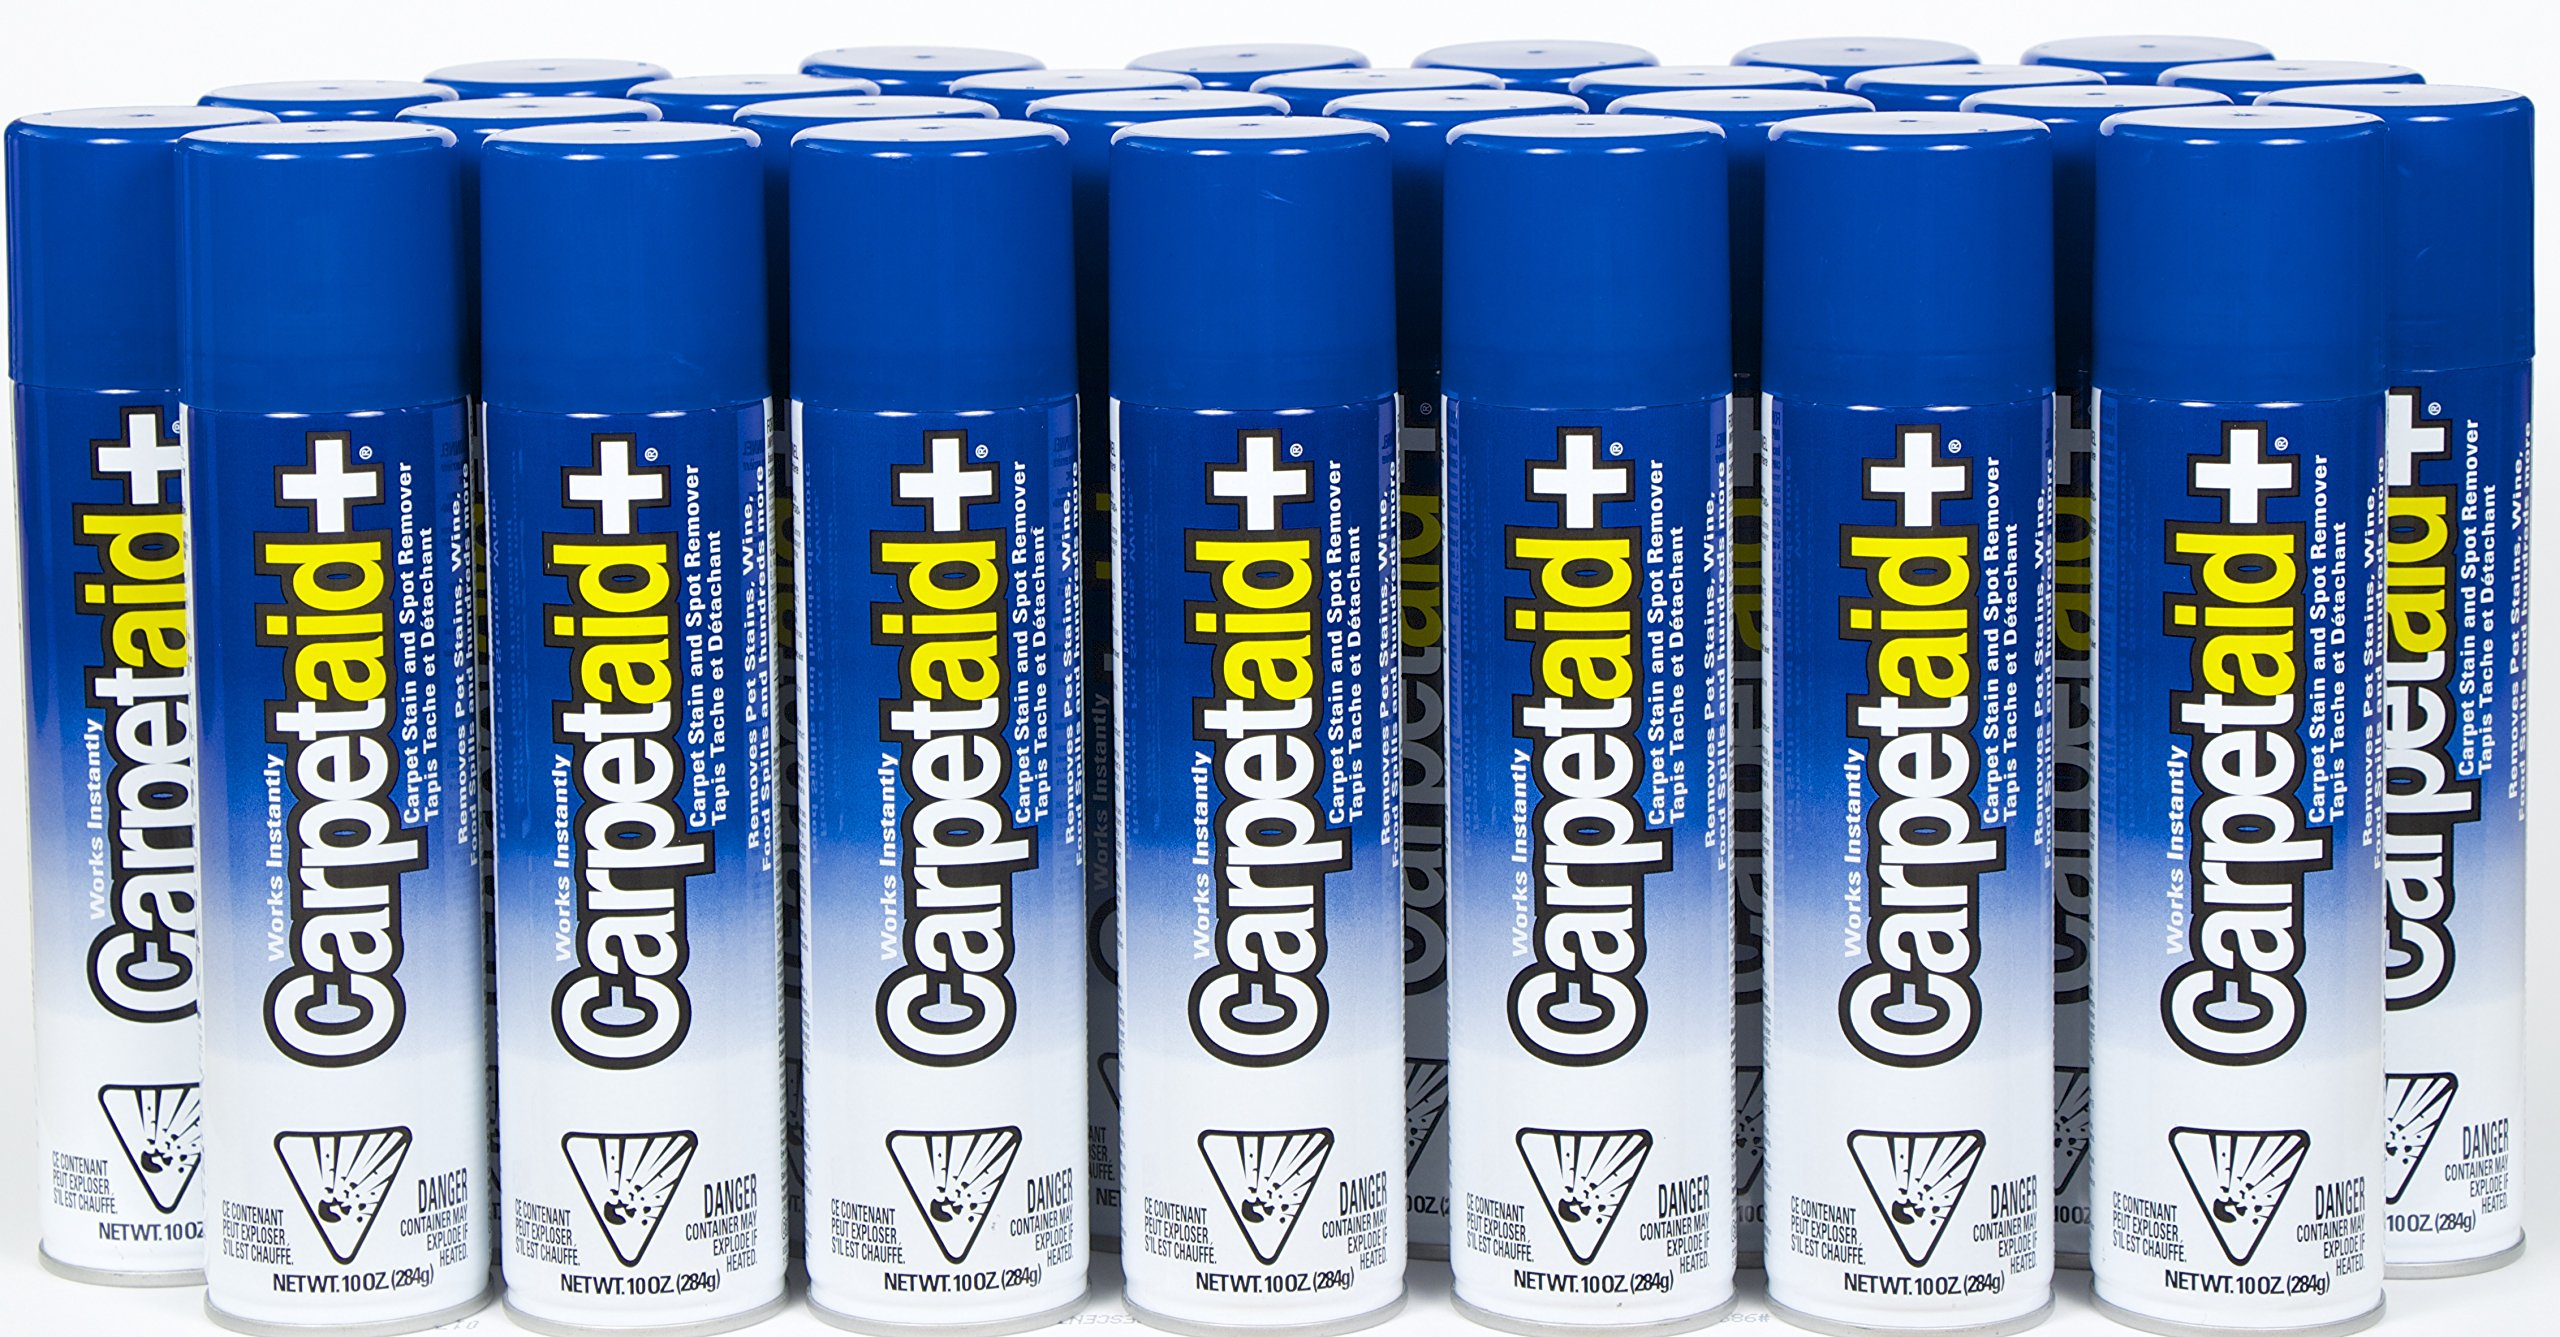 10 Oz. CarpetAid+ Carpet Stain Remover - Case of 28 Cans